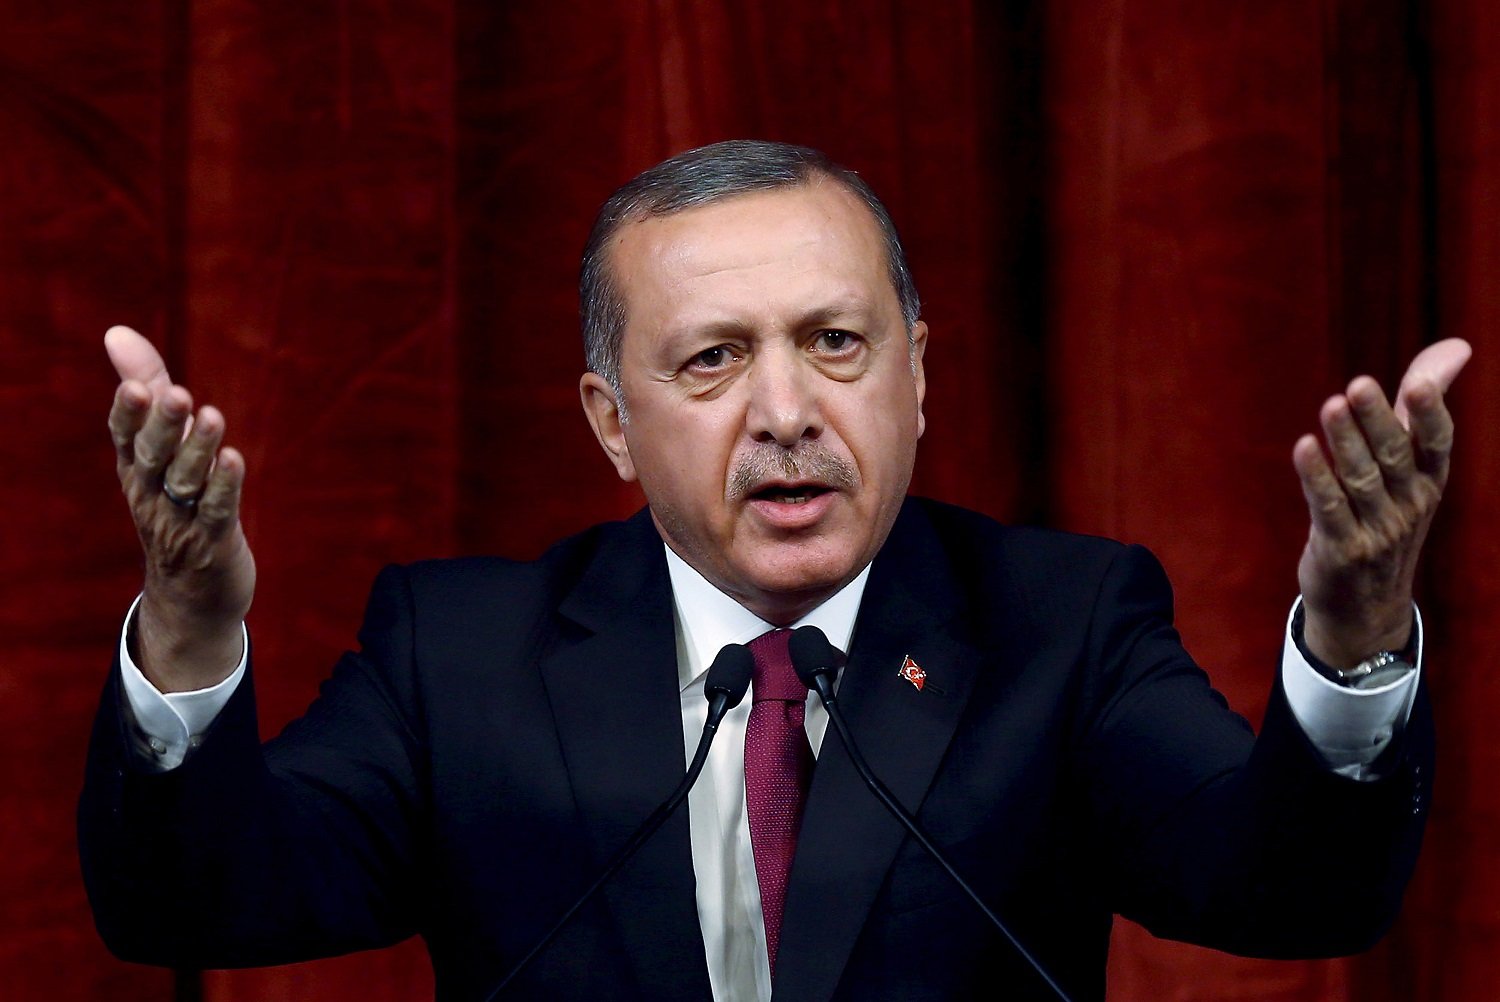 Turkey President Recep Tayyip Erdogan delivers a speech commenting on those killed and wounded during a failed July 15 military coup, in Ankara, Turkey, late Friday, July 29, 2016.  The government crackdown in the coup's aftermath has strained Turkey's ties with key allies including the United States. (AP Photo/Kayhan Ozer Presidential Press Service, via AP Pool)